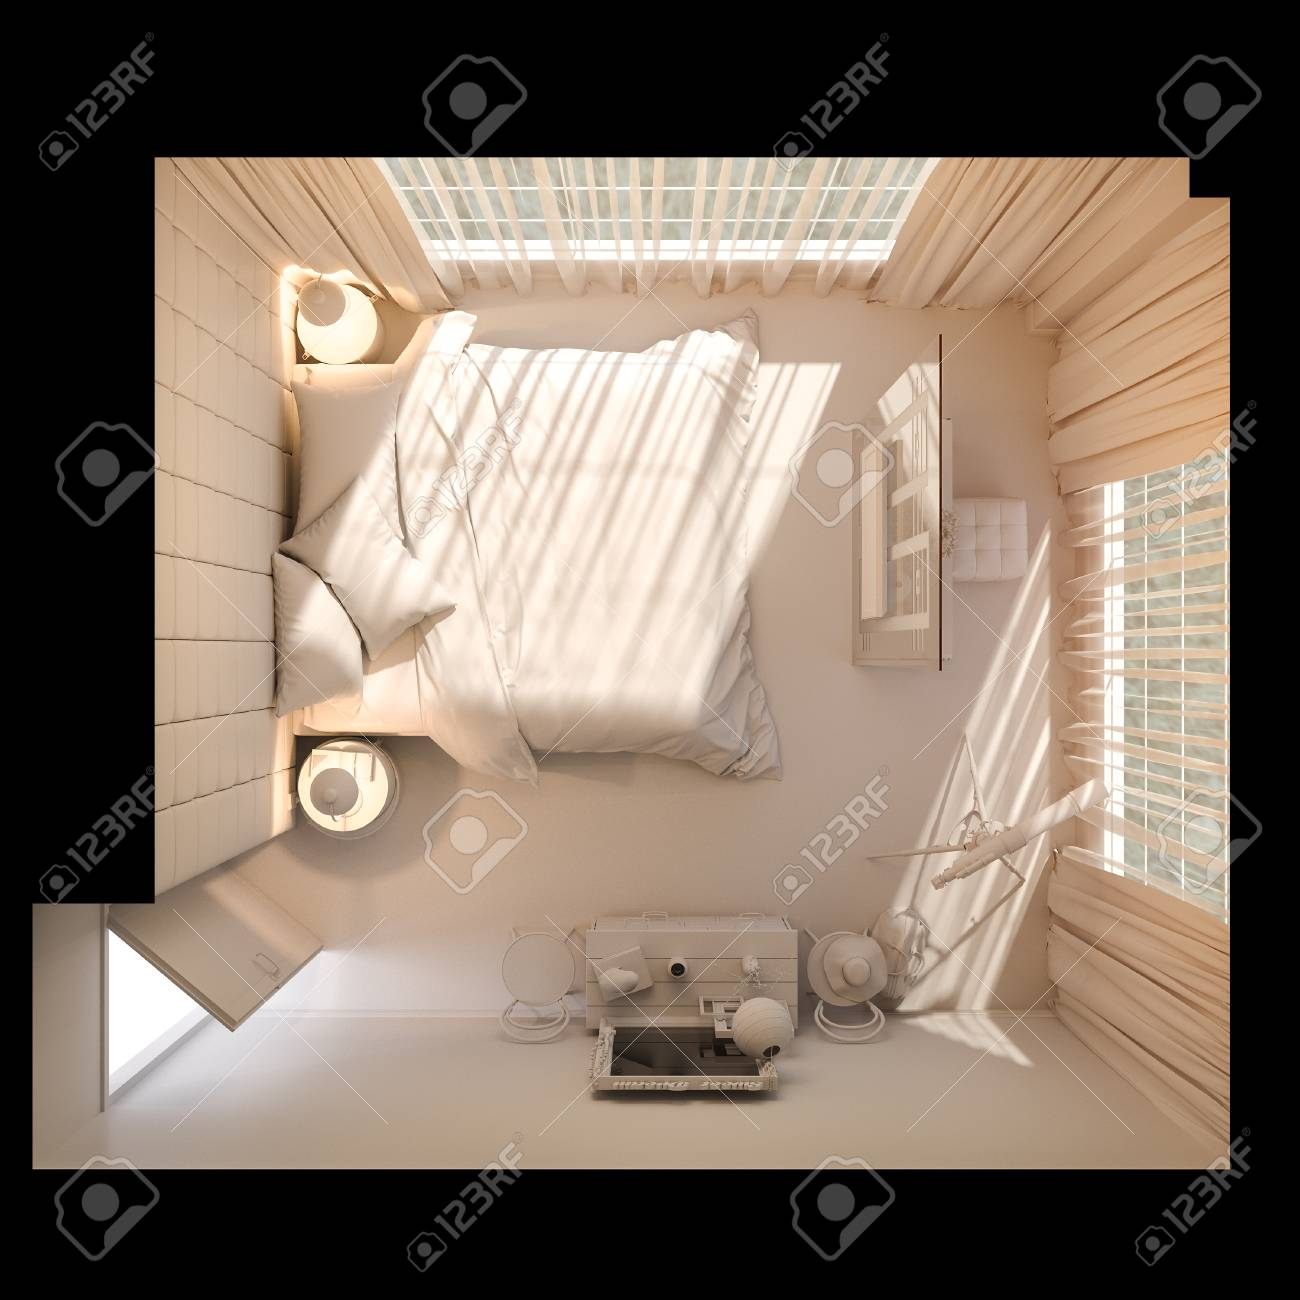 3d Illustration Of Bedroom Interior Design In A Modern Style Stock Photo Picture And Royalty Free Image Image 78416631